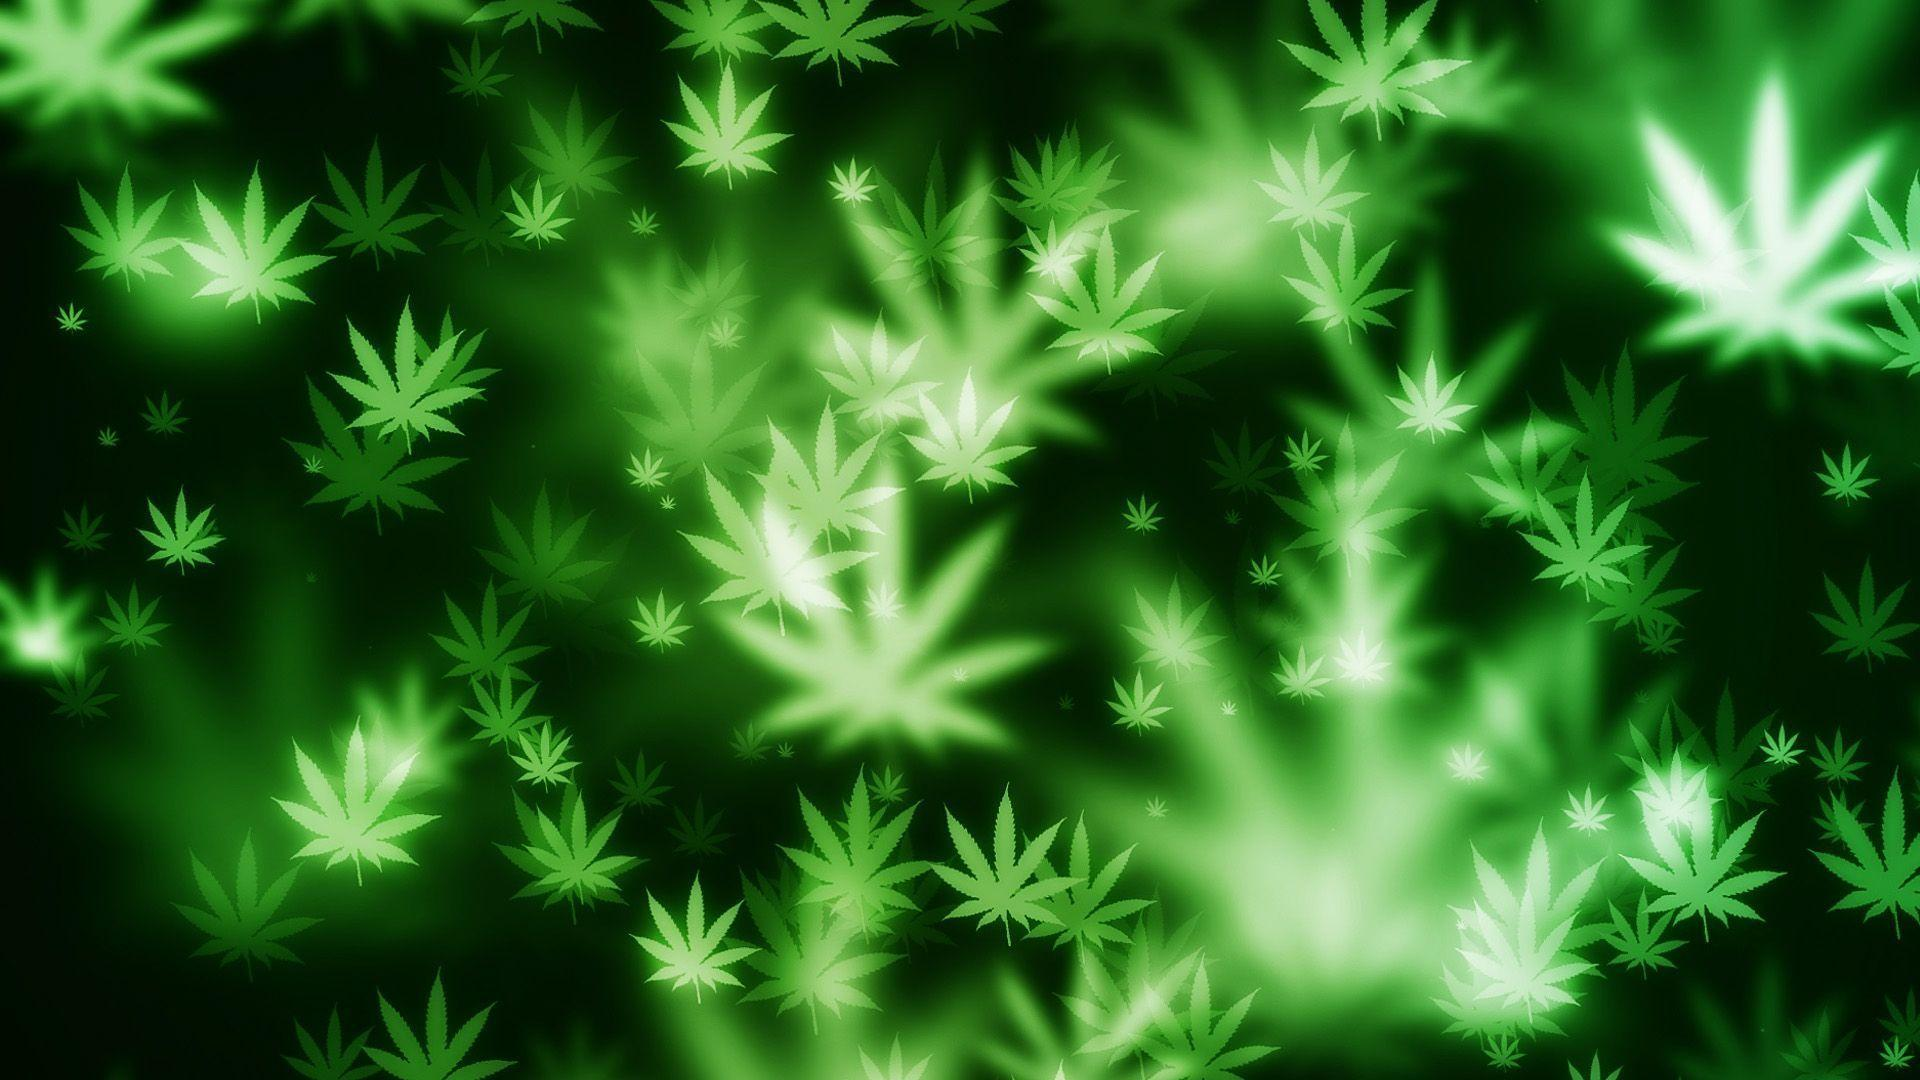 Marijuana Backgrounds - Wallpaper Cave